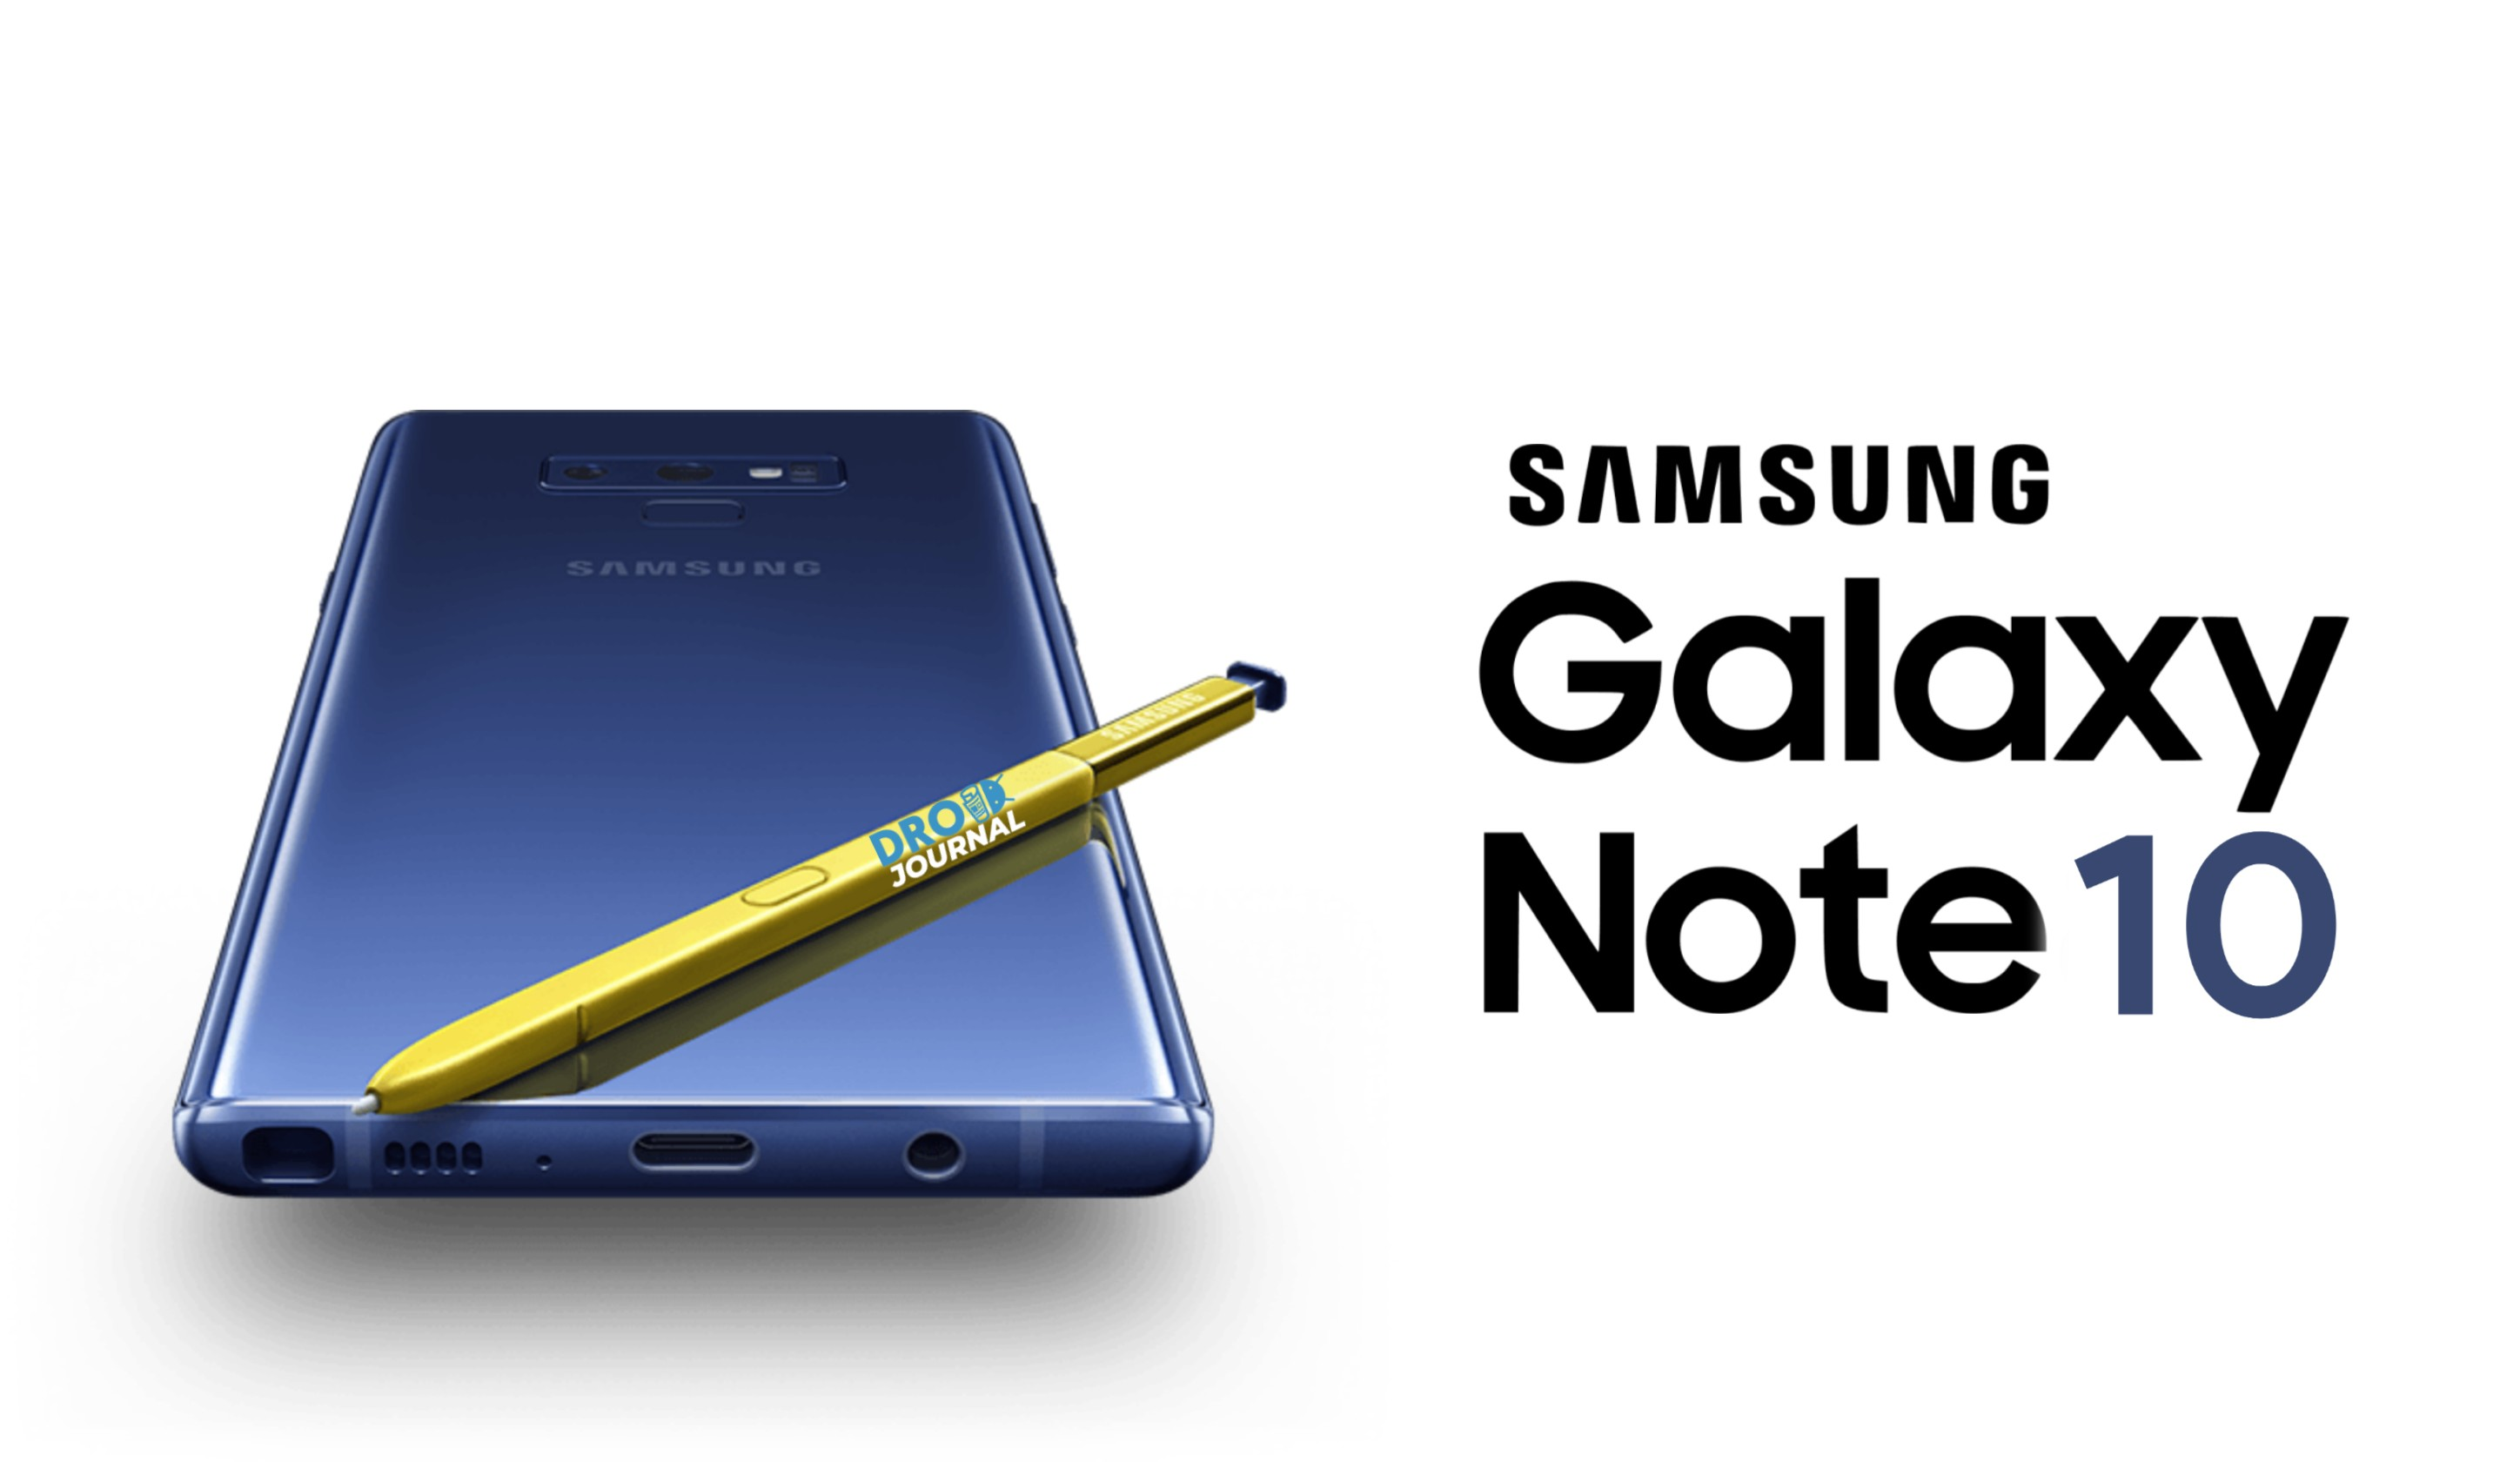 Samsung Galaxy Note 10 Pro may launch with Galaxy Note 10 - DroidJournal